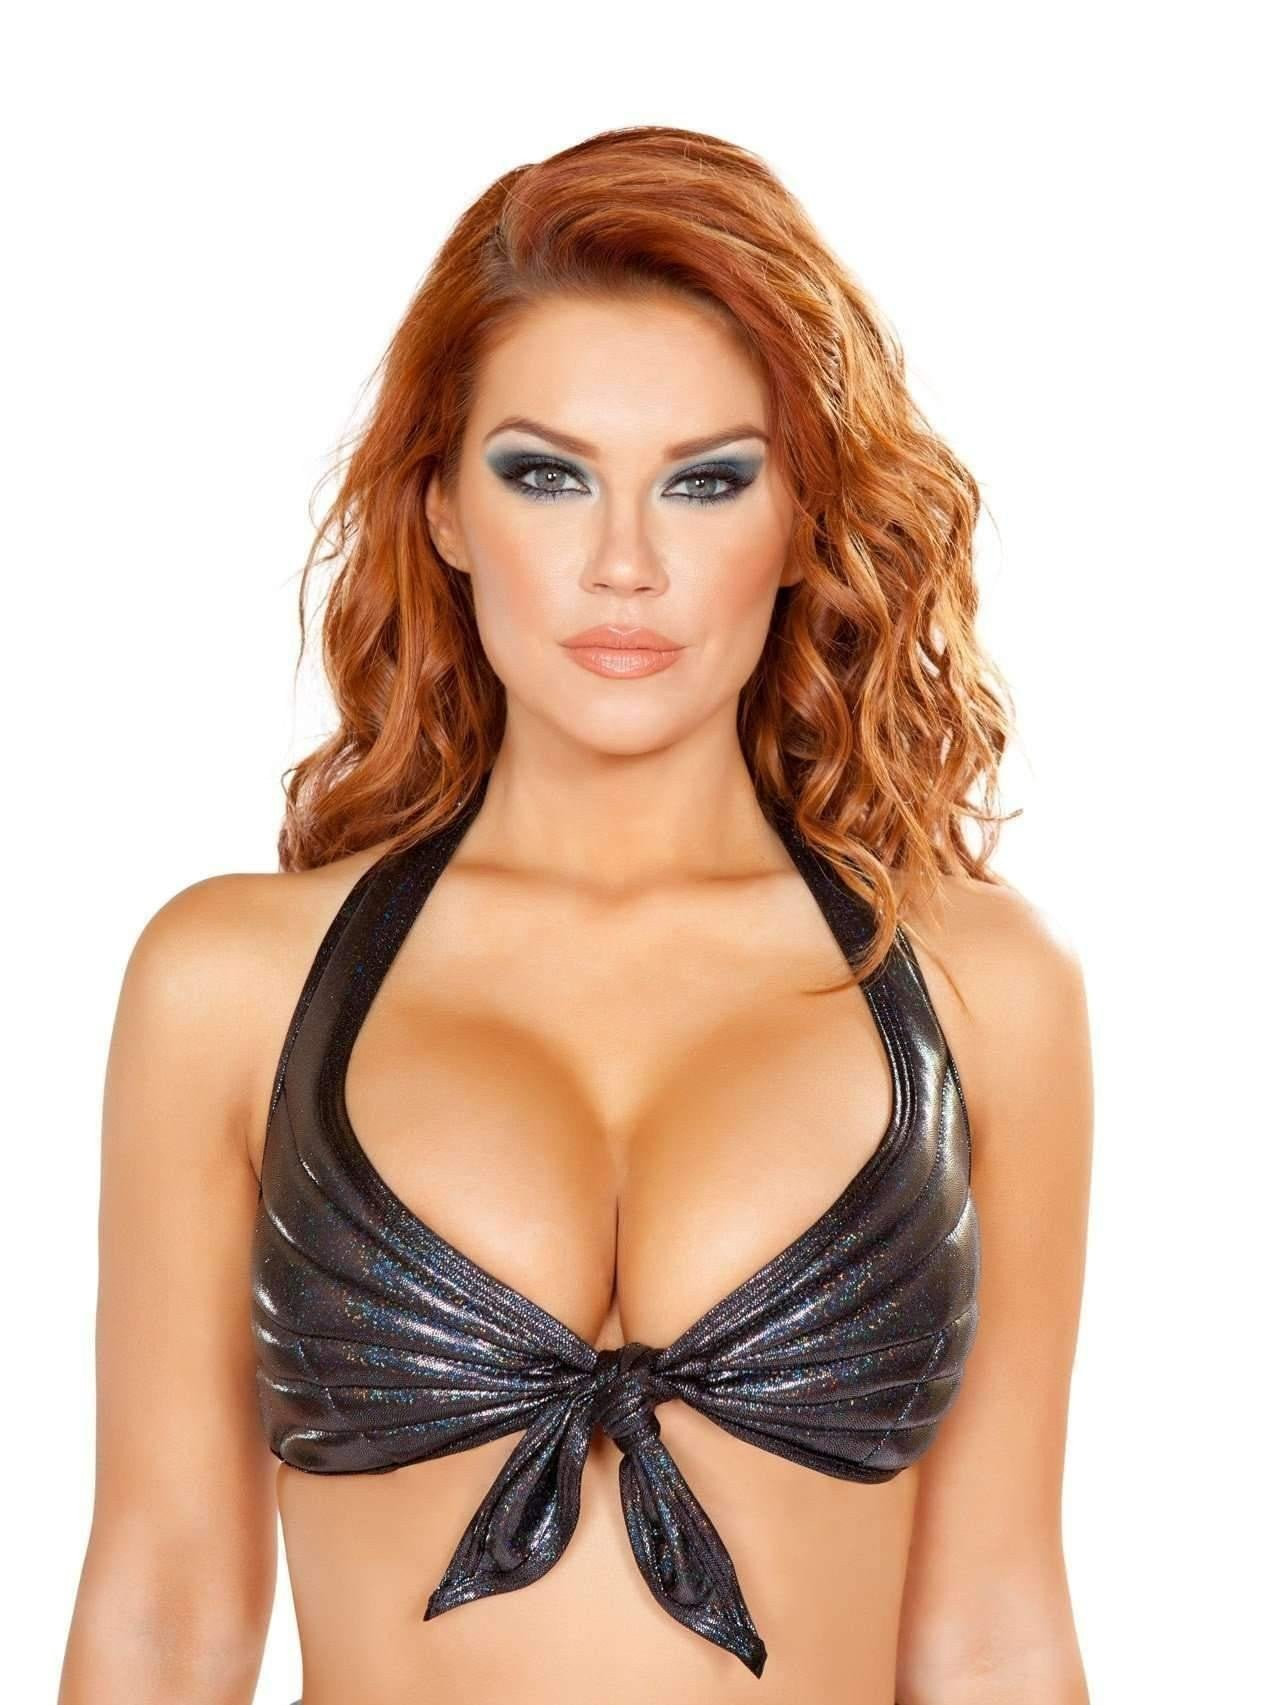 Roma Costume 4765 - Tie Front Halter Style Top-Costumes-Roma-Small-Black-Unspoken Fashion